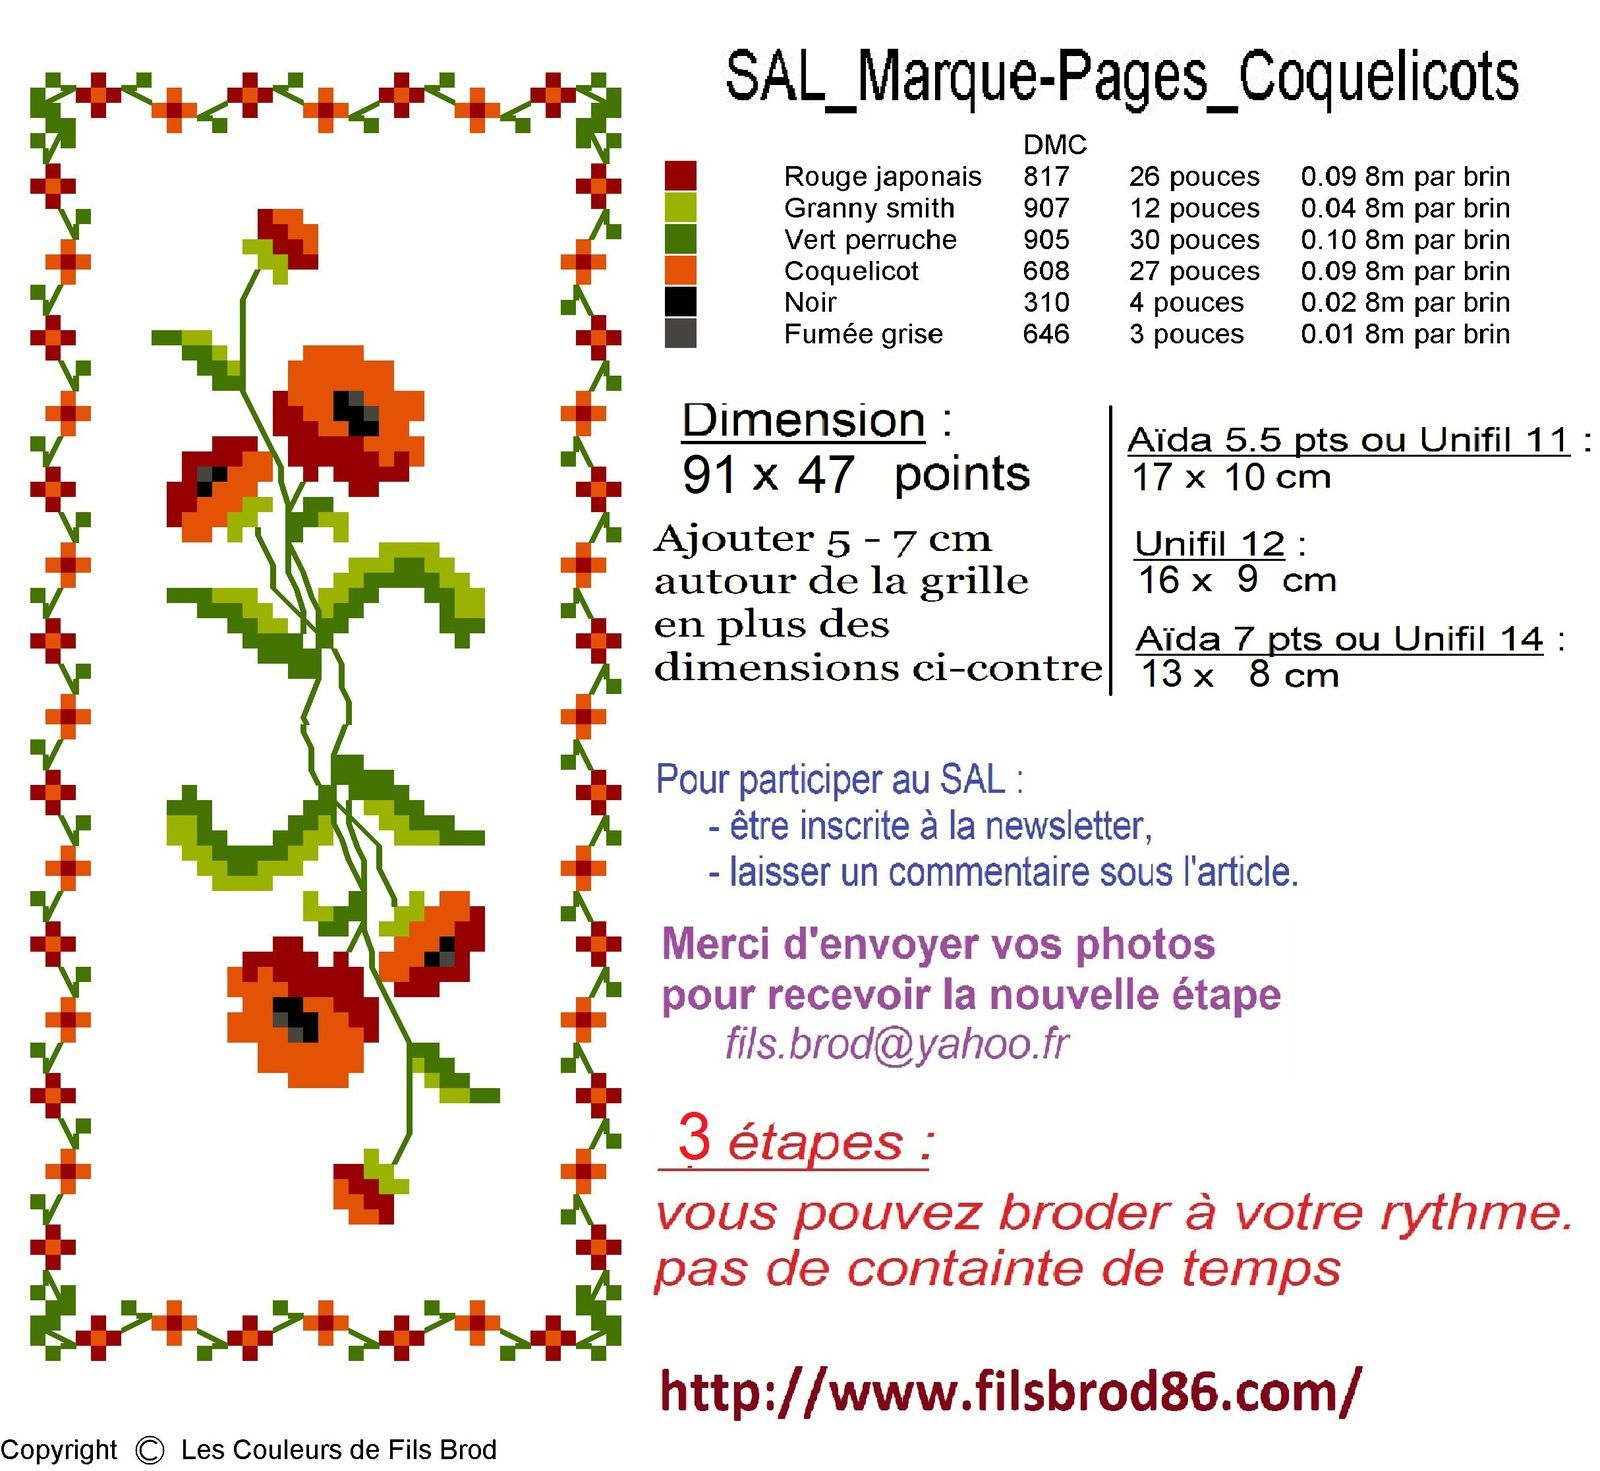 Sal marque-pages coquelicots